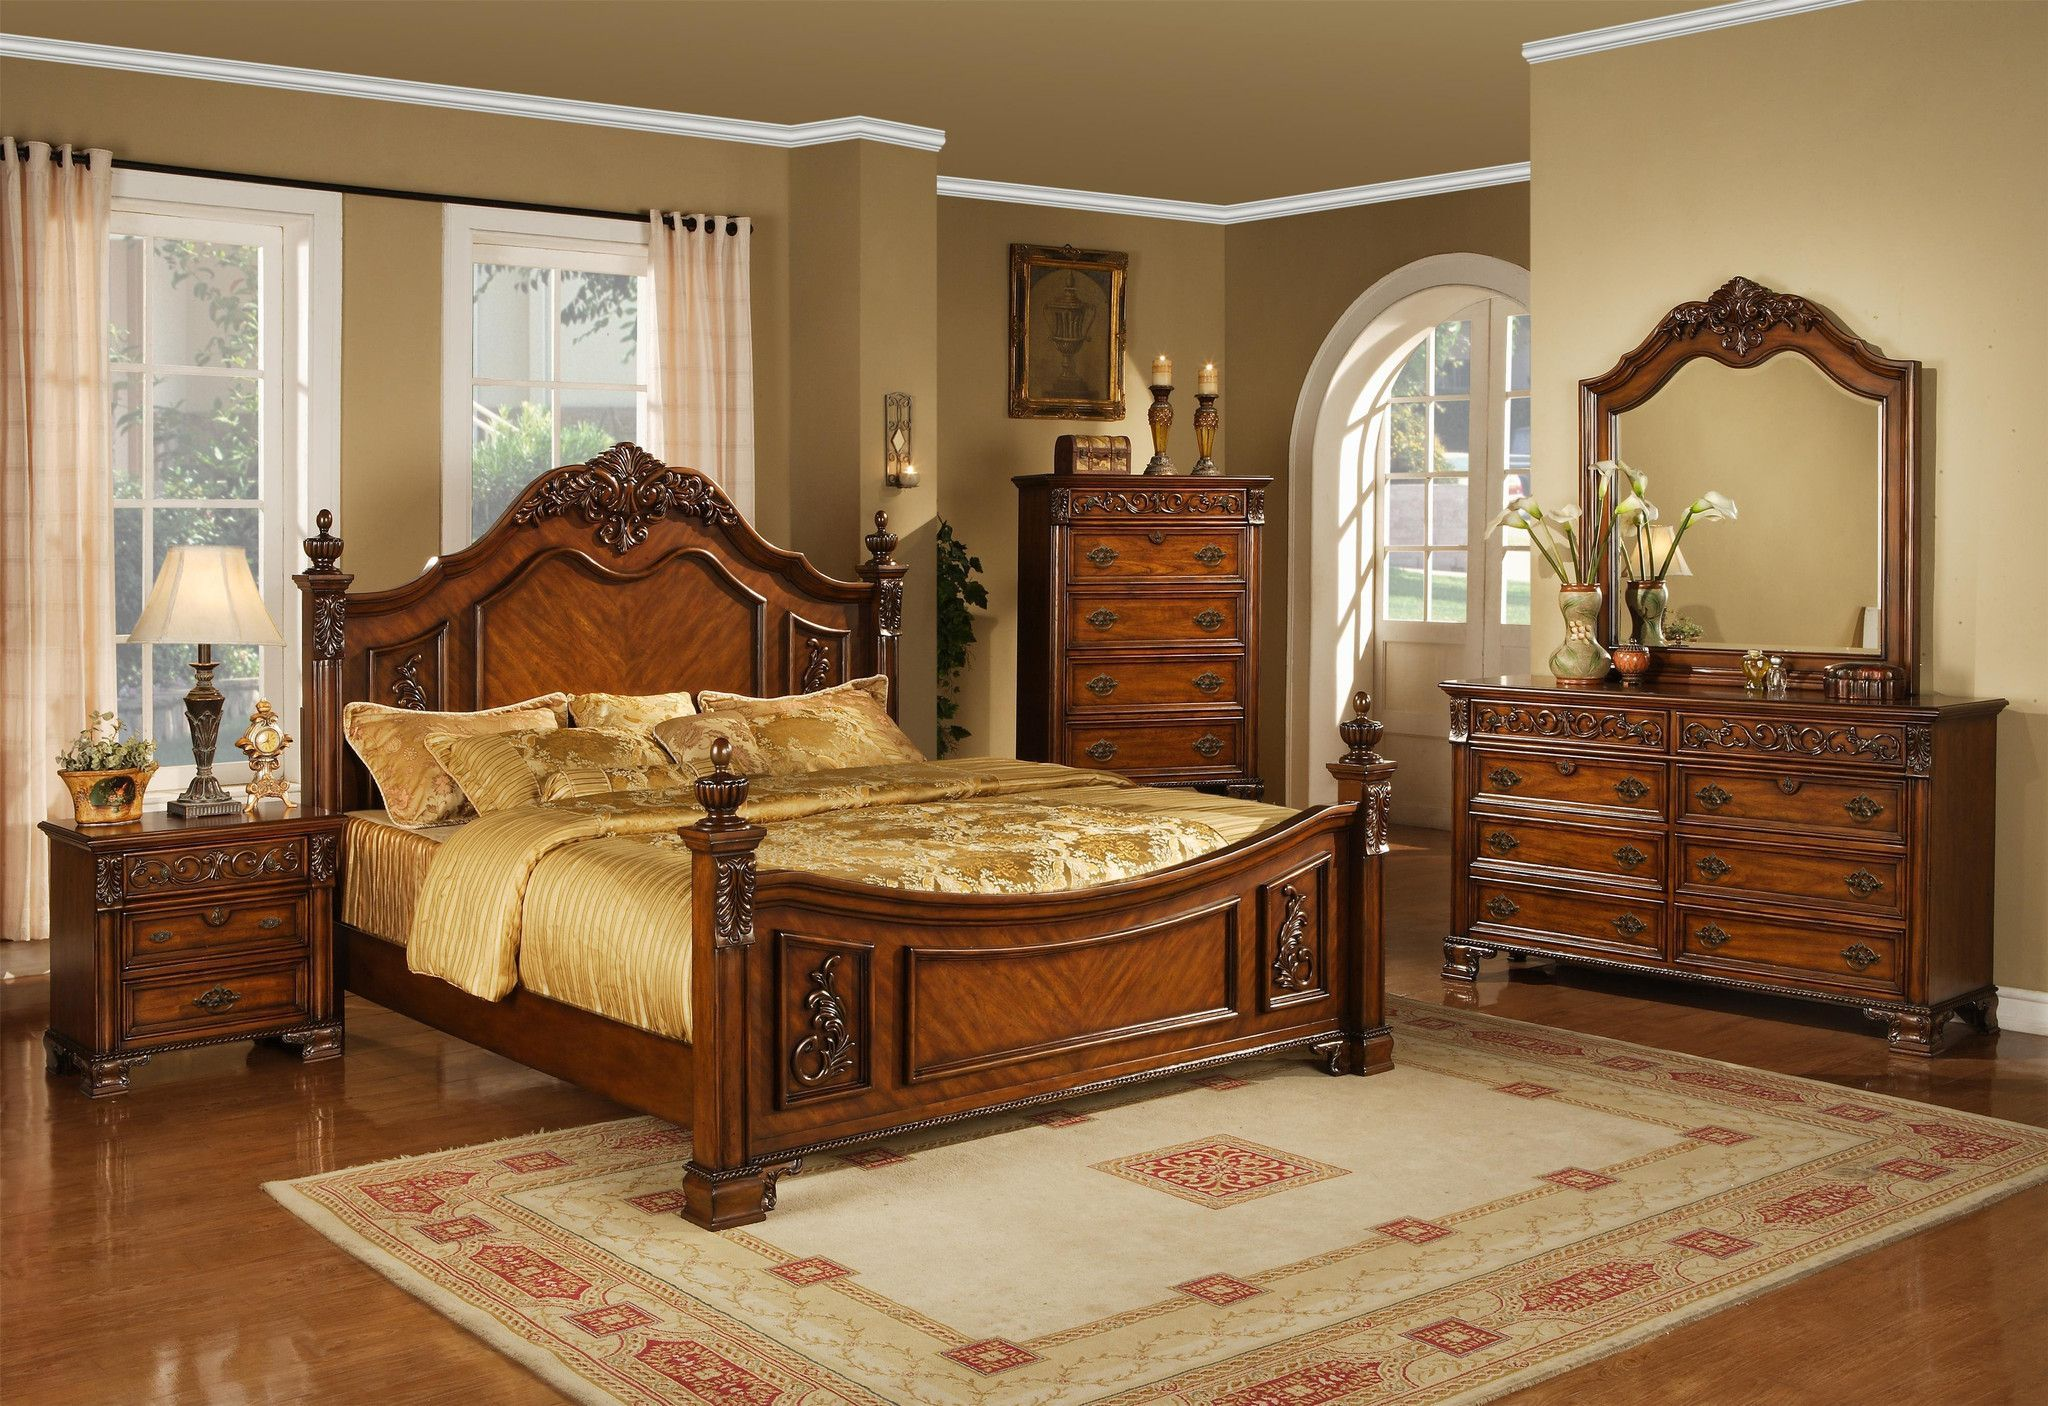 Mansion Cherry Queen Bedroom Set By Lifestyle Furniture My - Cheap 5 piece bedroom furniture sets